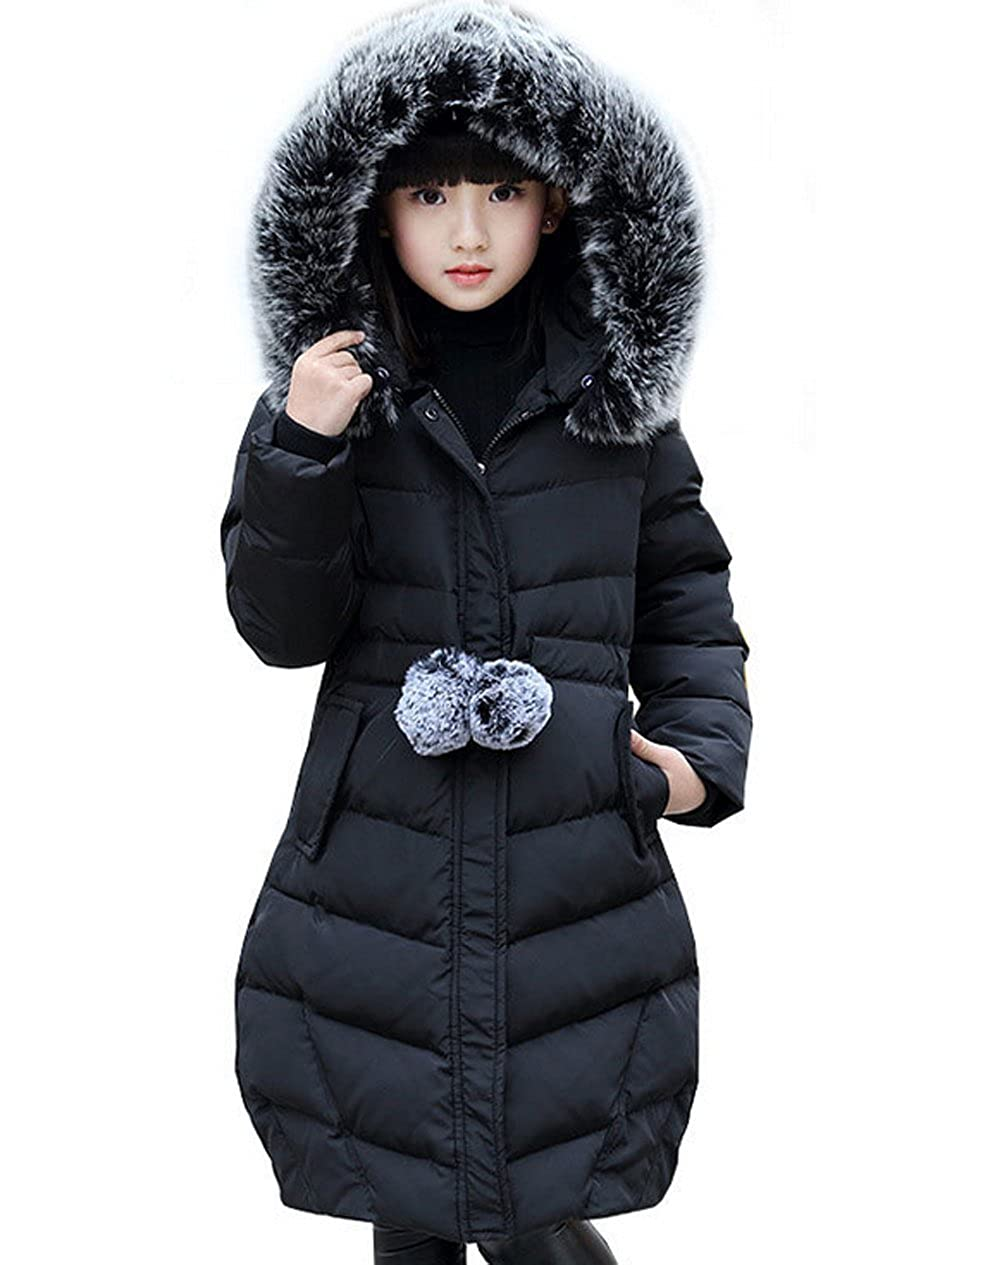 Maison Jardin Piumino Girl warm parka winter Bambino Parka Jacket Hooded Long Coat Faux Fur Jacket Winter Warm